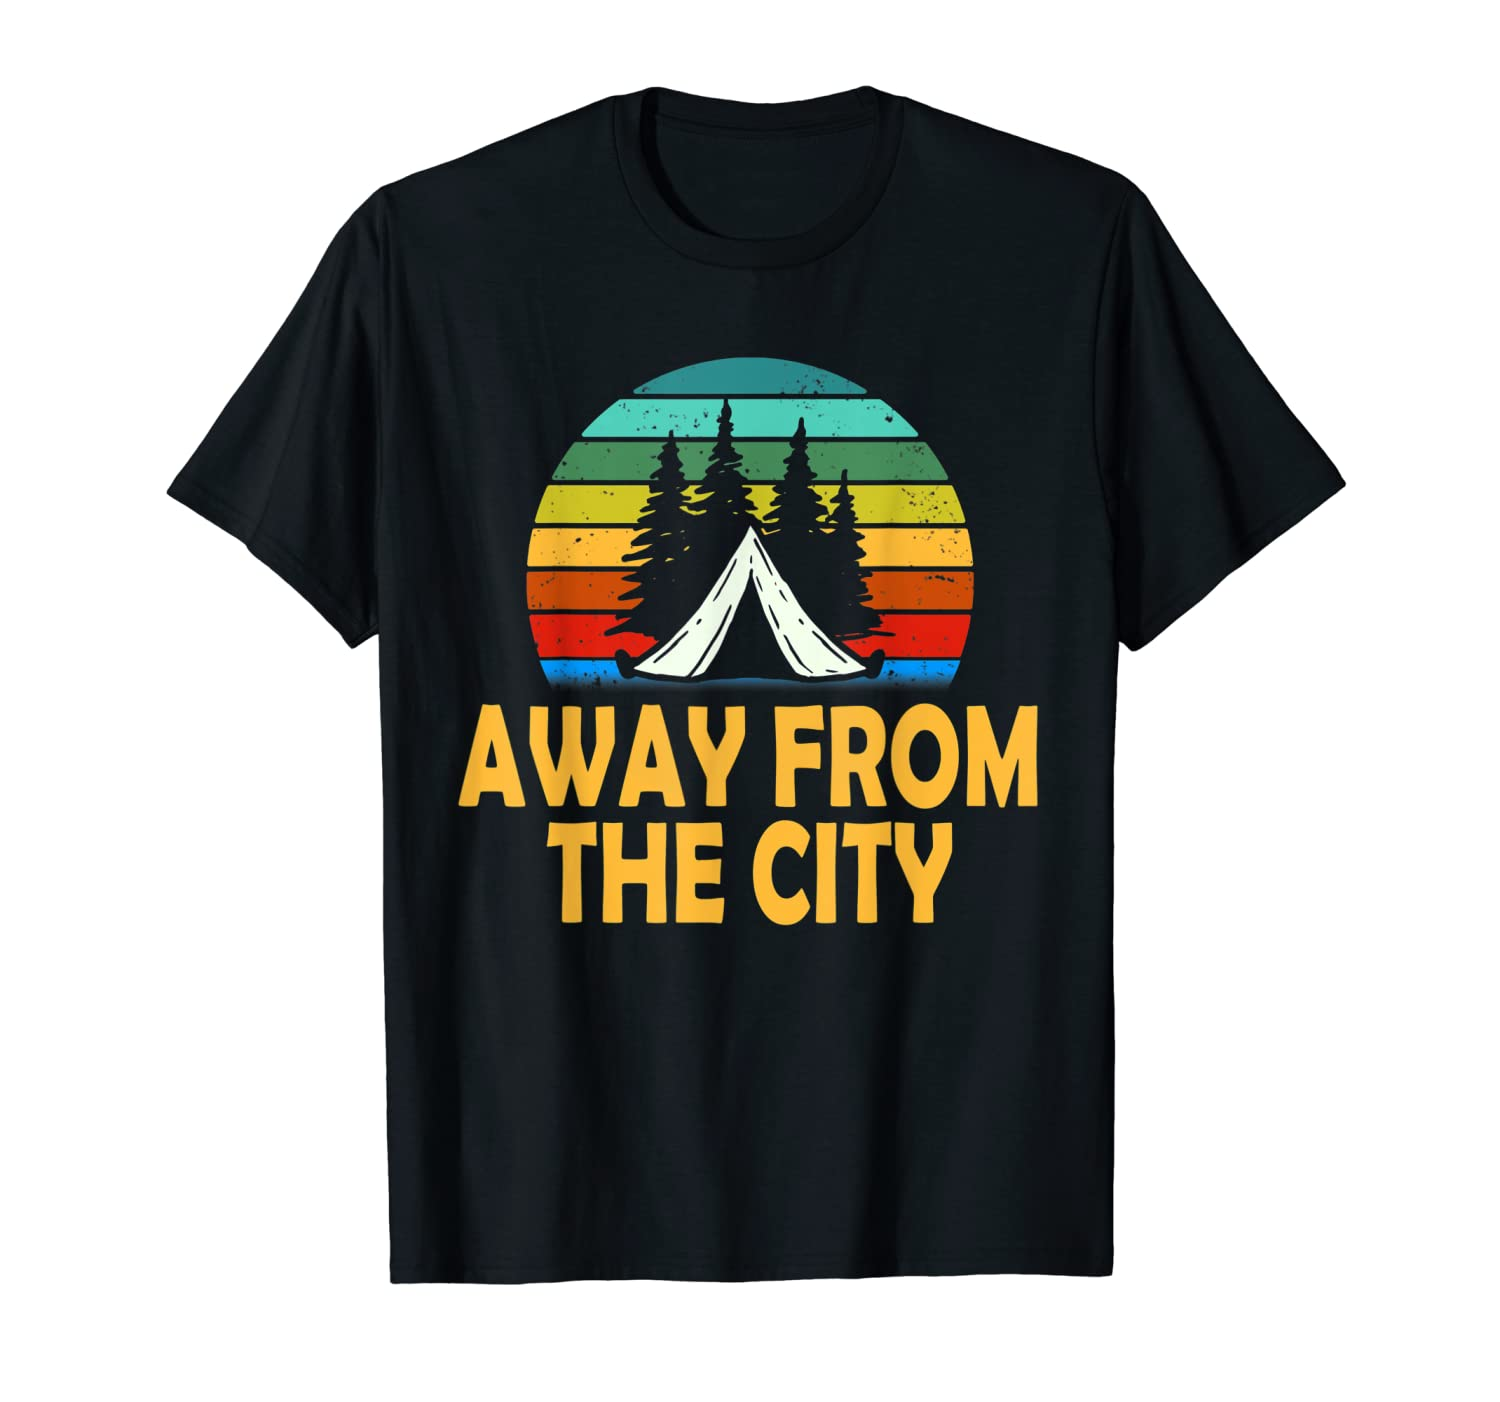 Funny Camping Shirt Away From The City Summer Gift